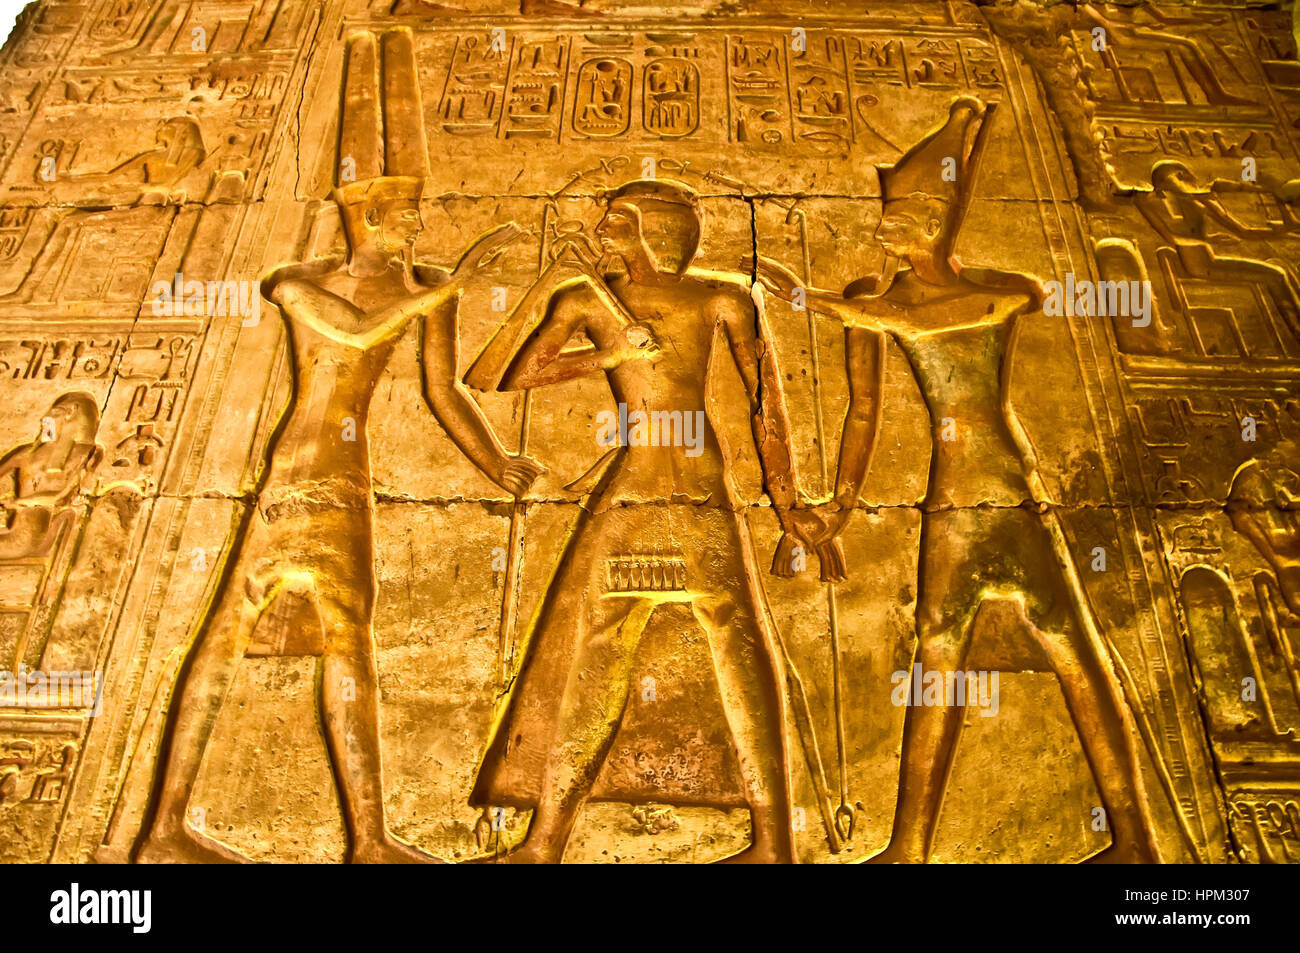 Temple of Seti I at Abydos illuminated wall with pharonic figures and numerous hieroglyphs - Stock Image